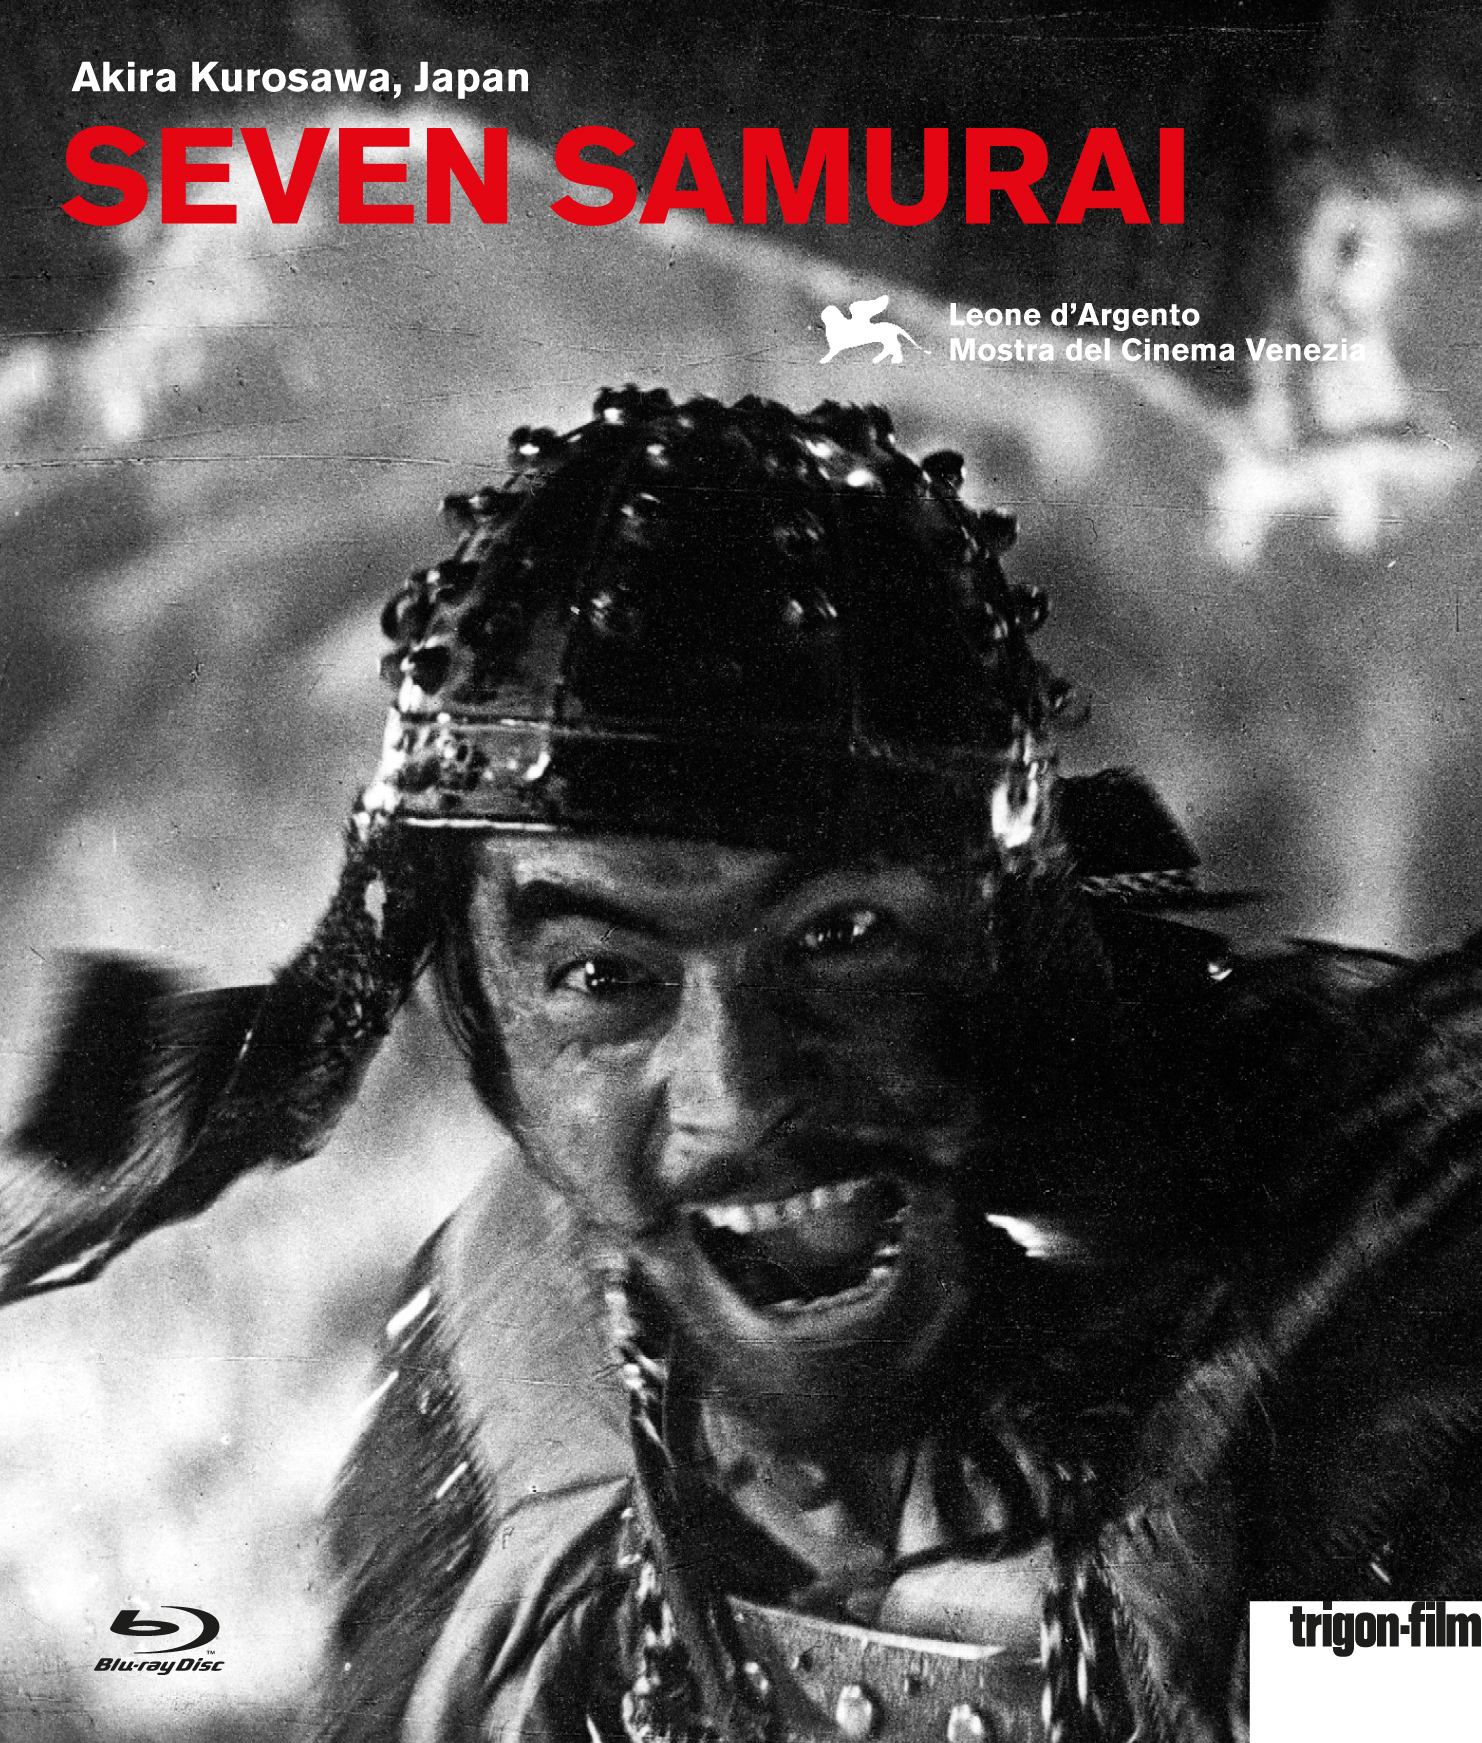 Throne of Blood   Kumonosu J C3 B4 in addition Record For Women In Doc Category furthermore Clapperboard also The Seven Samurai   Shichinin no samurai additionally Seduced Abandoned James Toback Cannes 2013 150578. on oscar directors most nominated filmmakers